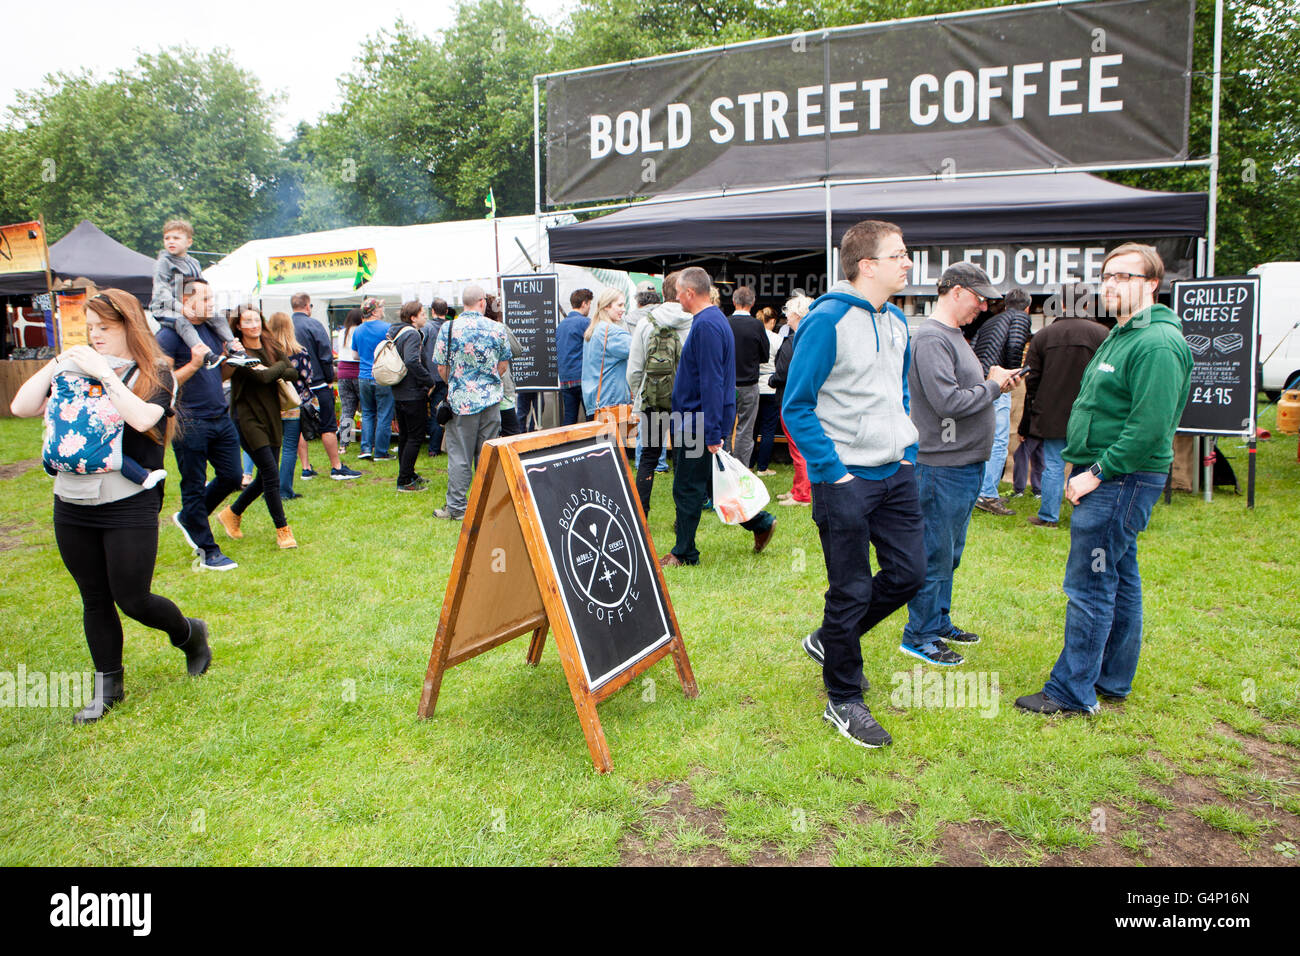 Food stall vans at the Afric Oye festival in Sefton Park, Liverpool, Merseyside, UK - Stock Image